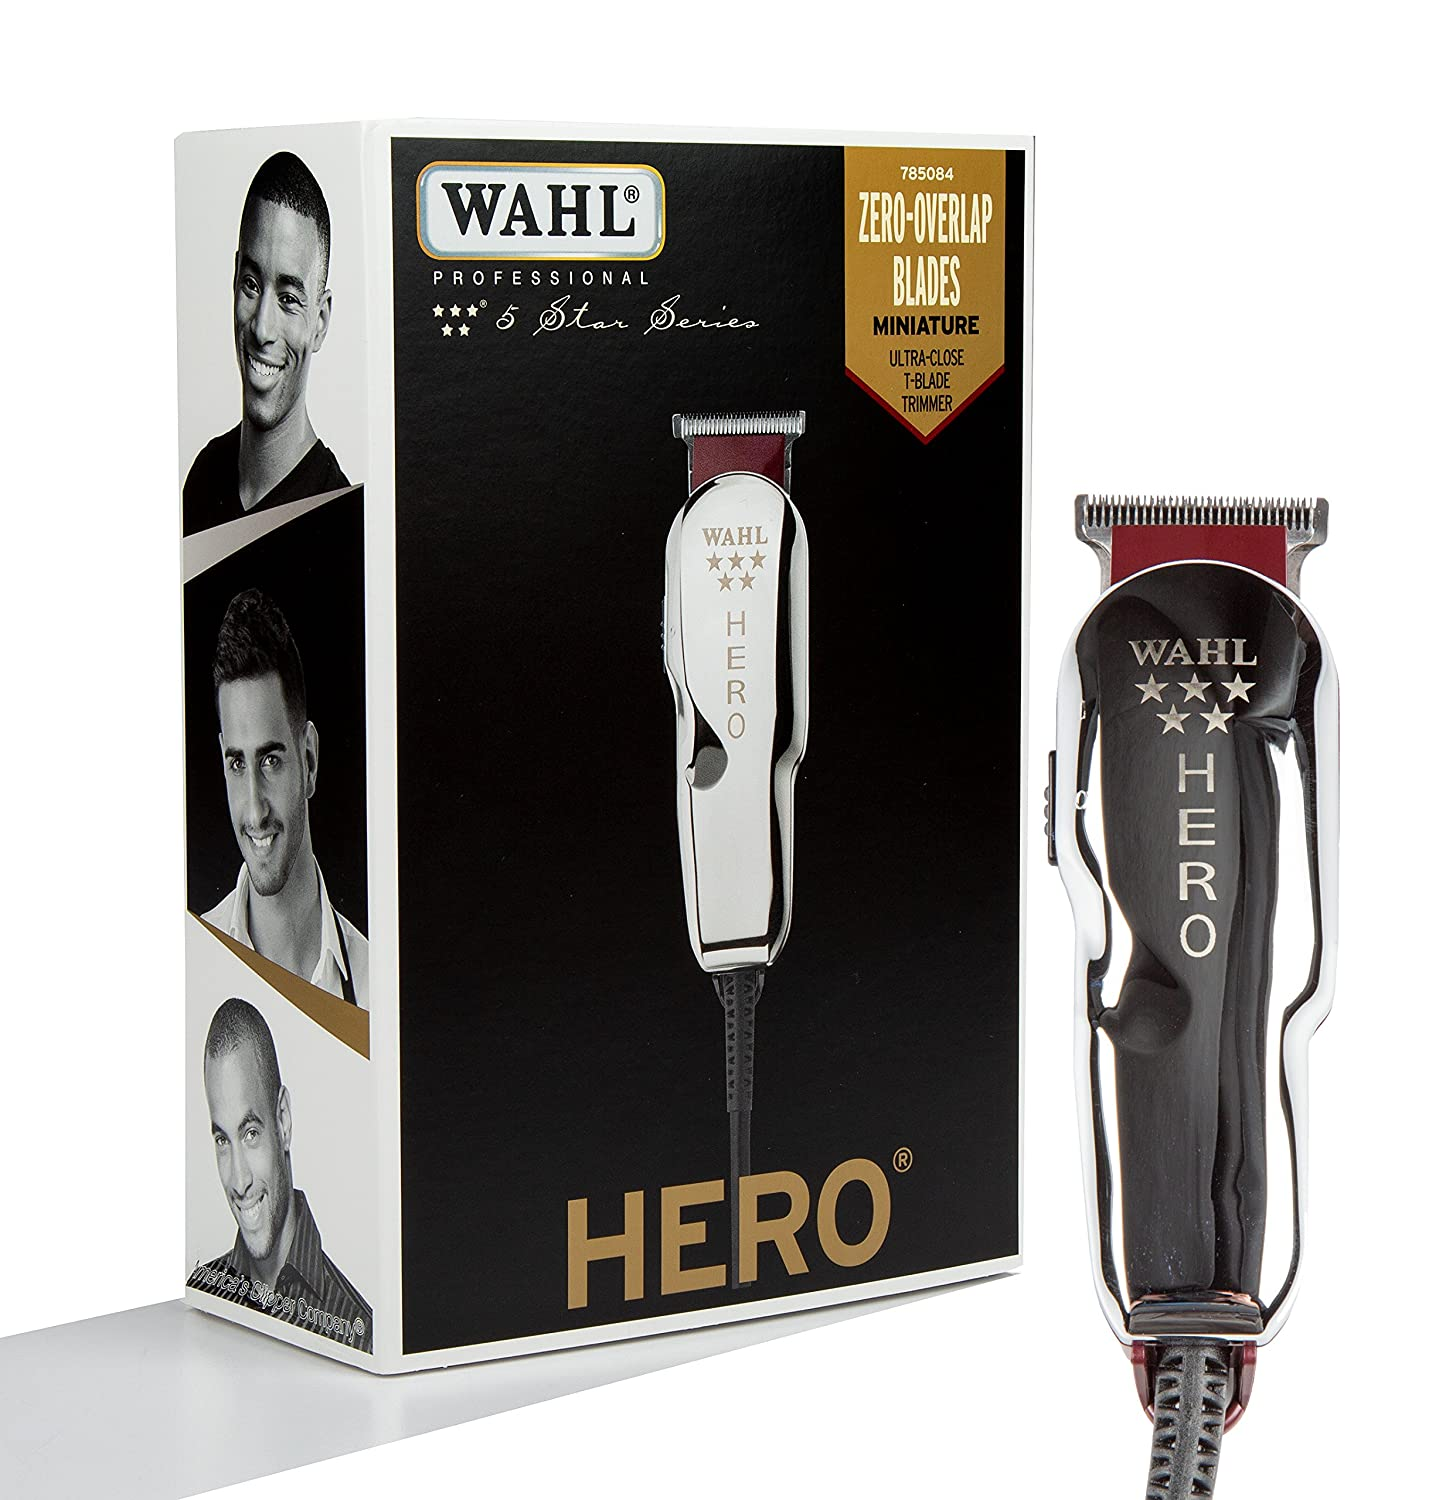 Wahl Professional 5-Star Hero Corded T Blade Trimmer 8991-727